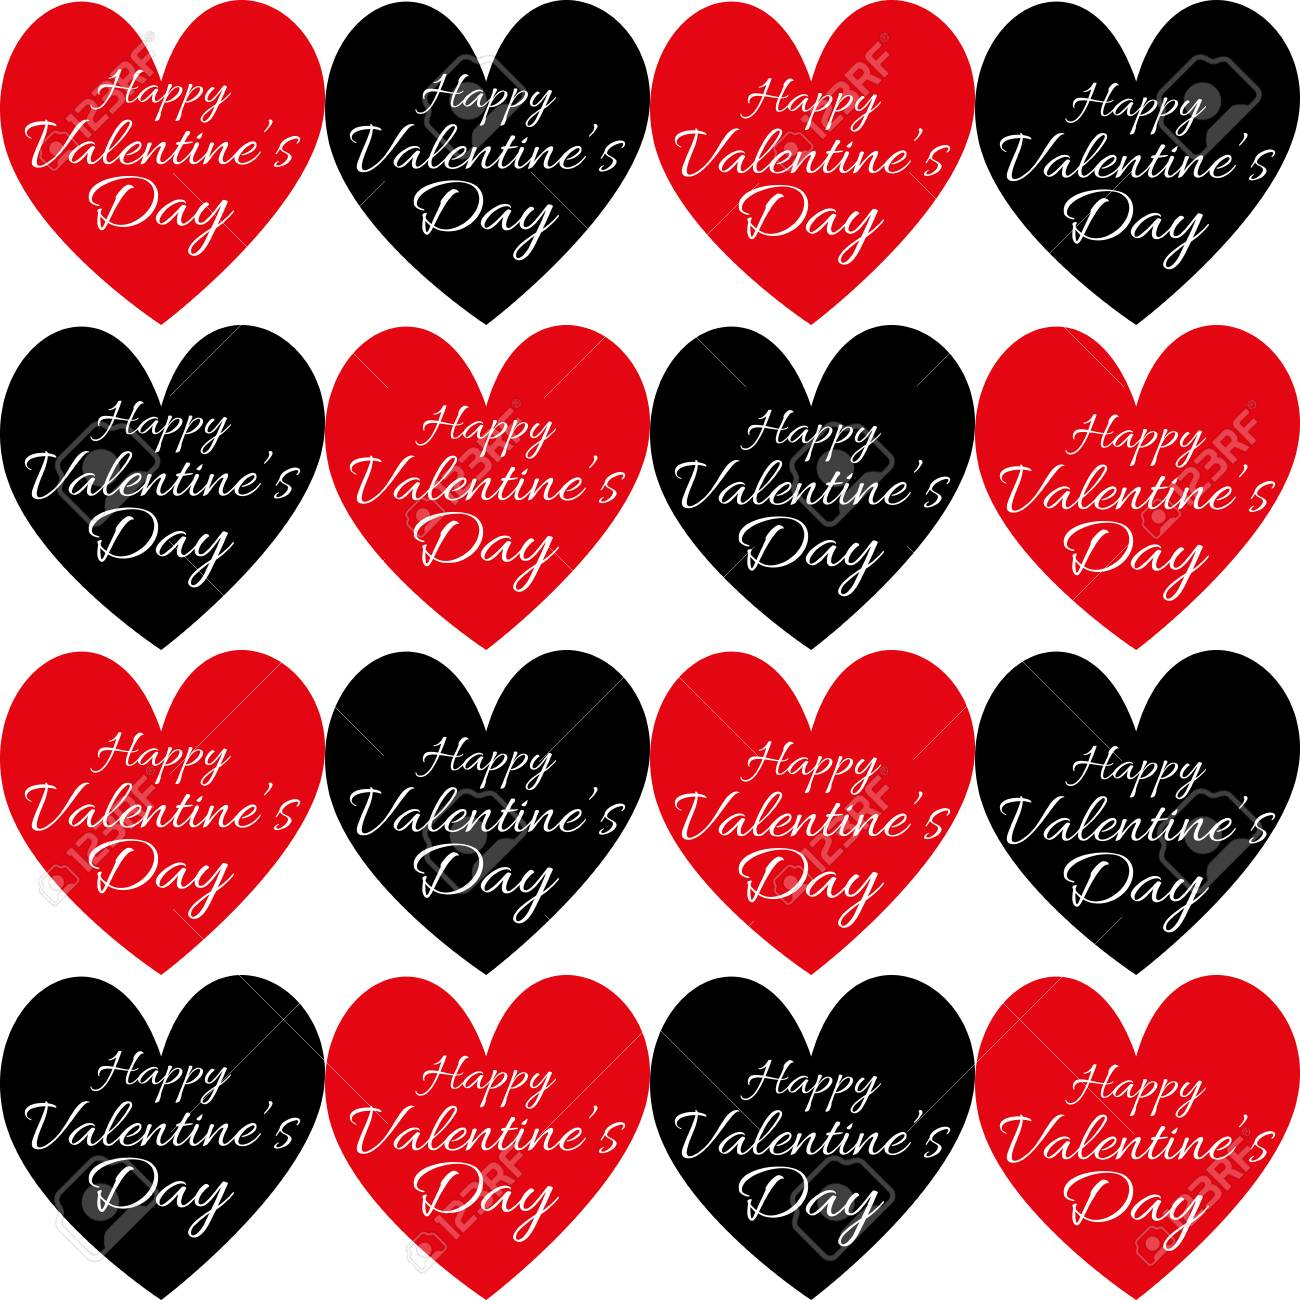 Happy Valentines Day Greeting Card Multiple Red And Black Hearts